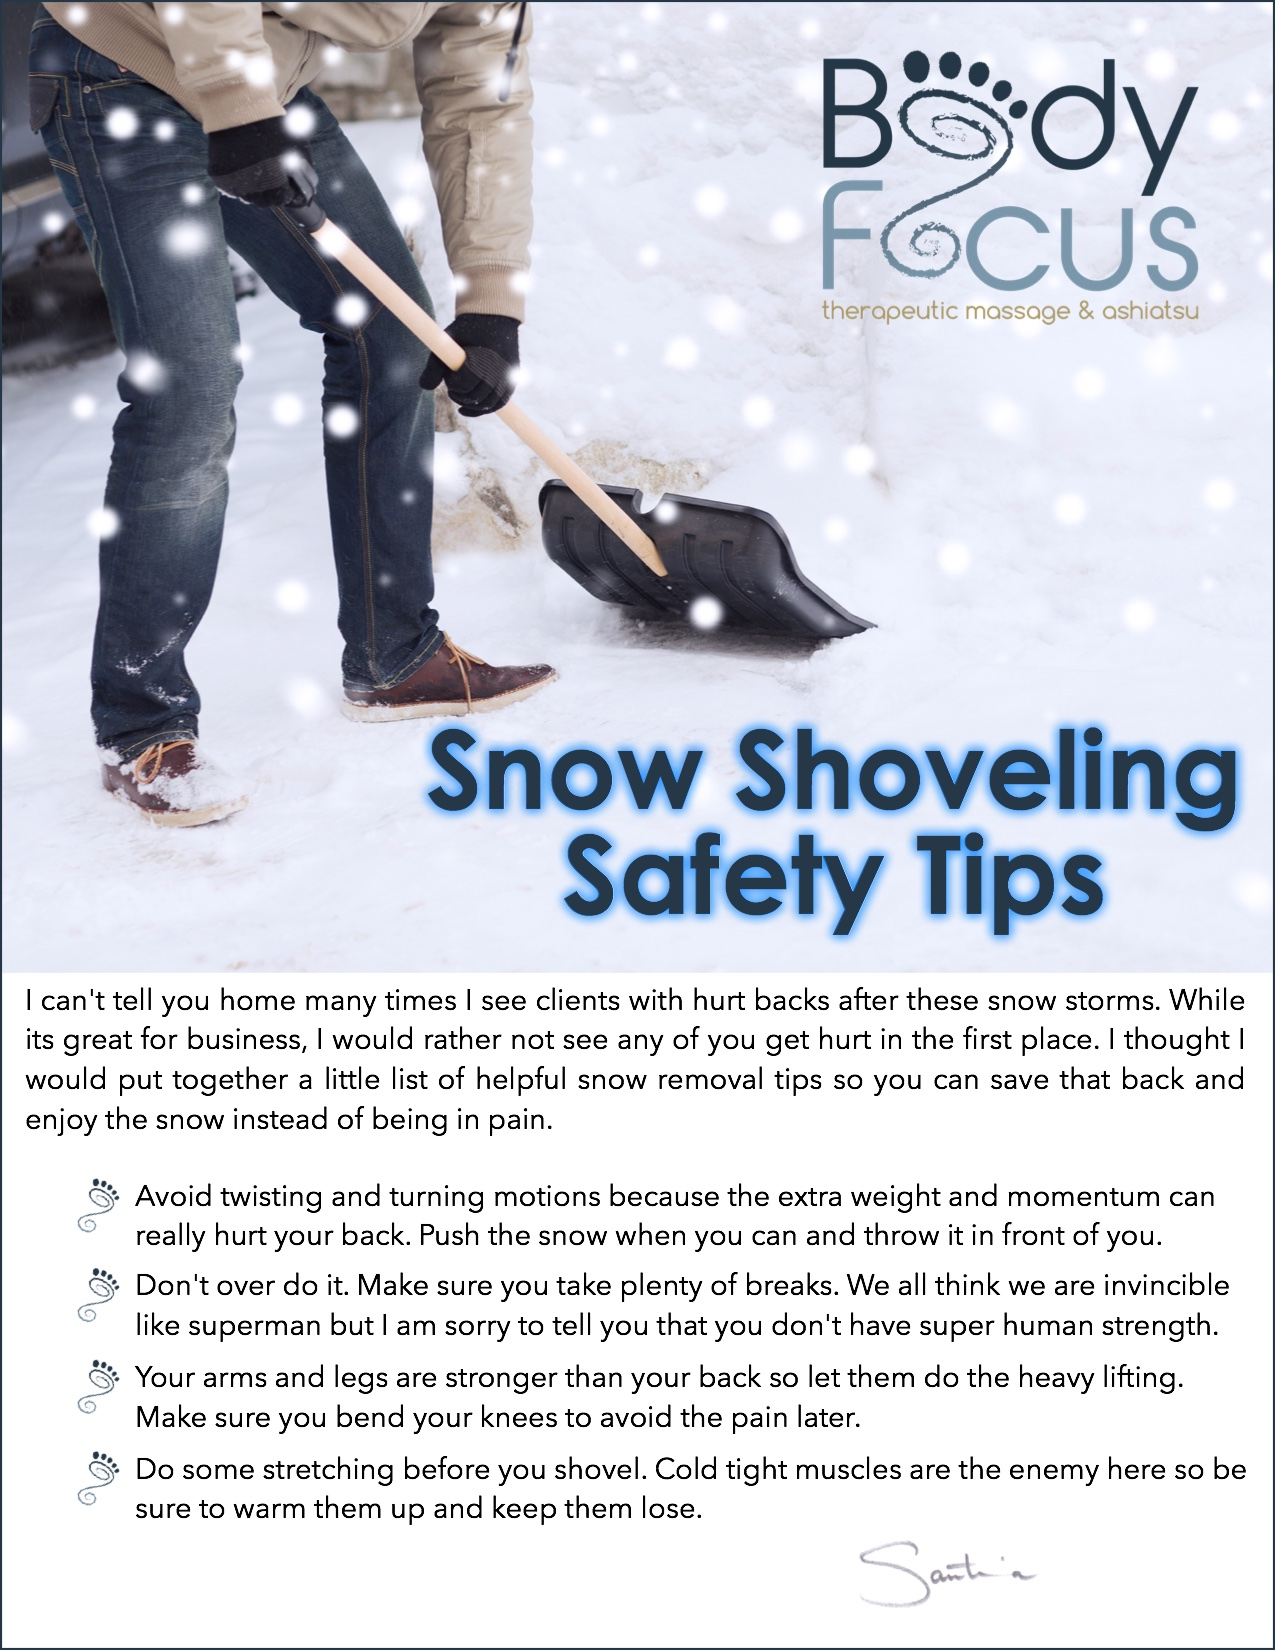 Shoveling Safety Tips